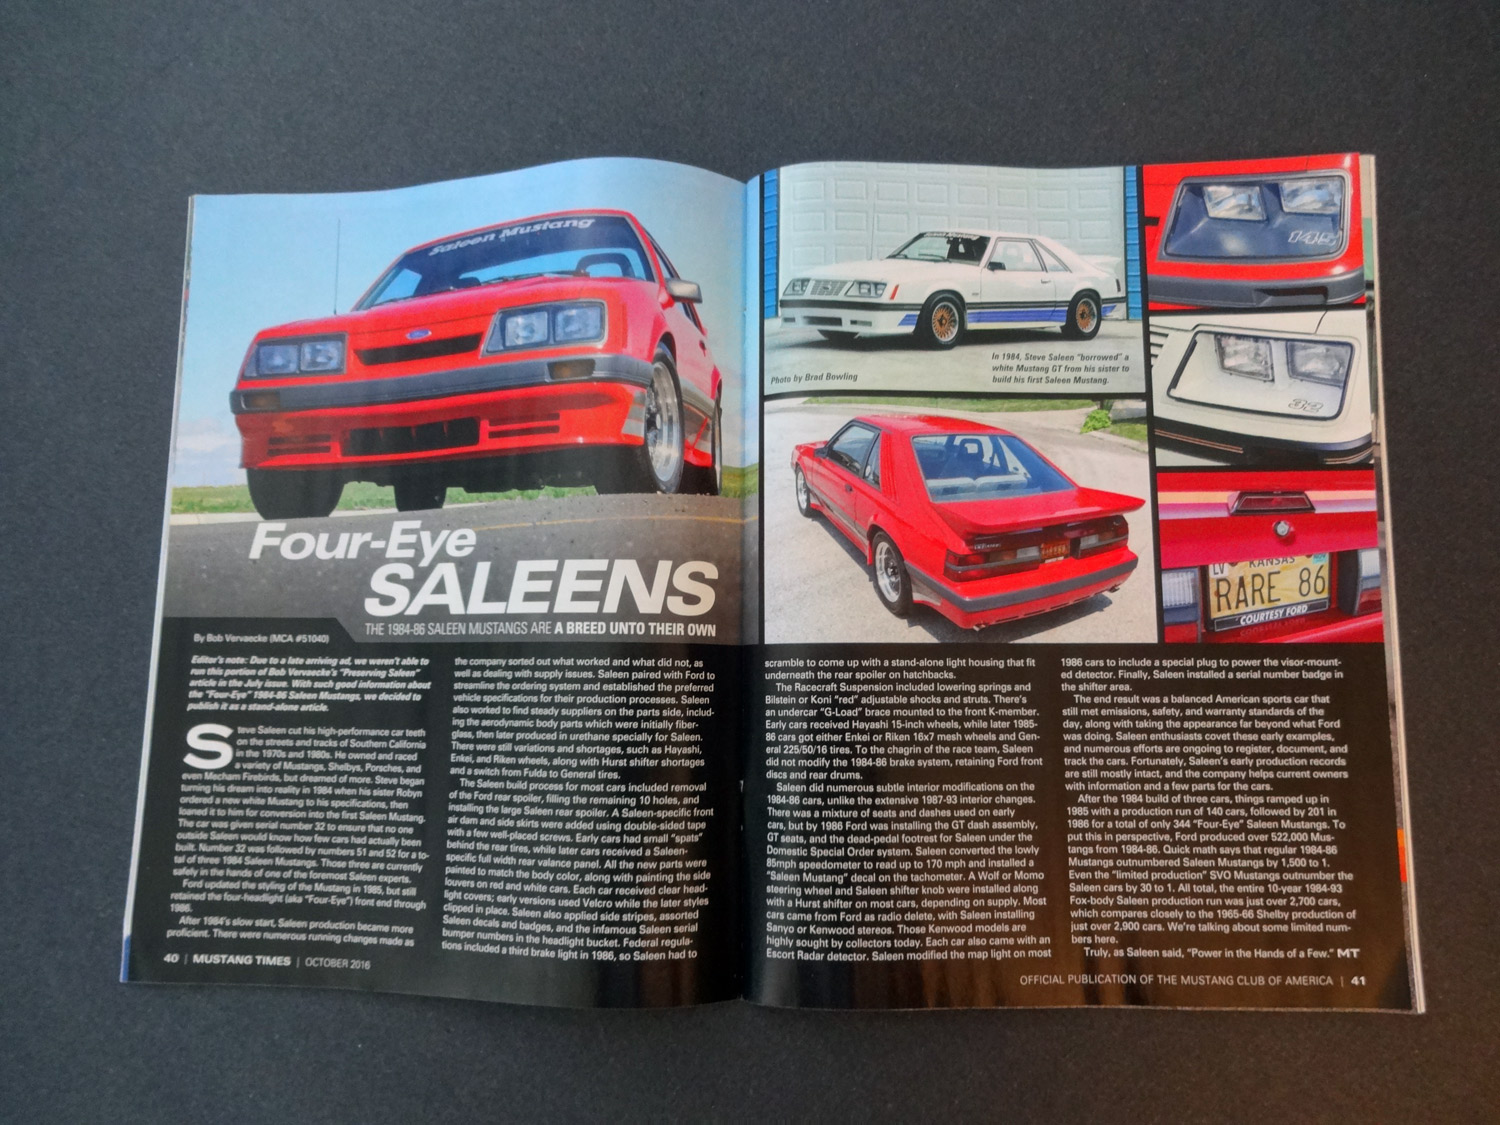 Mustang Times: Four-Eye Saleen Mustangs